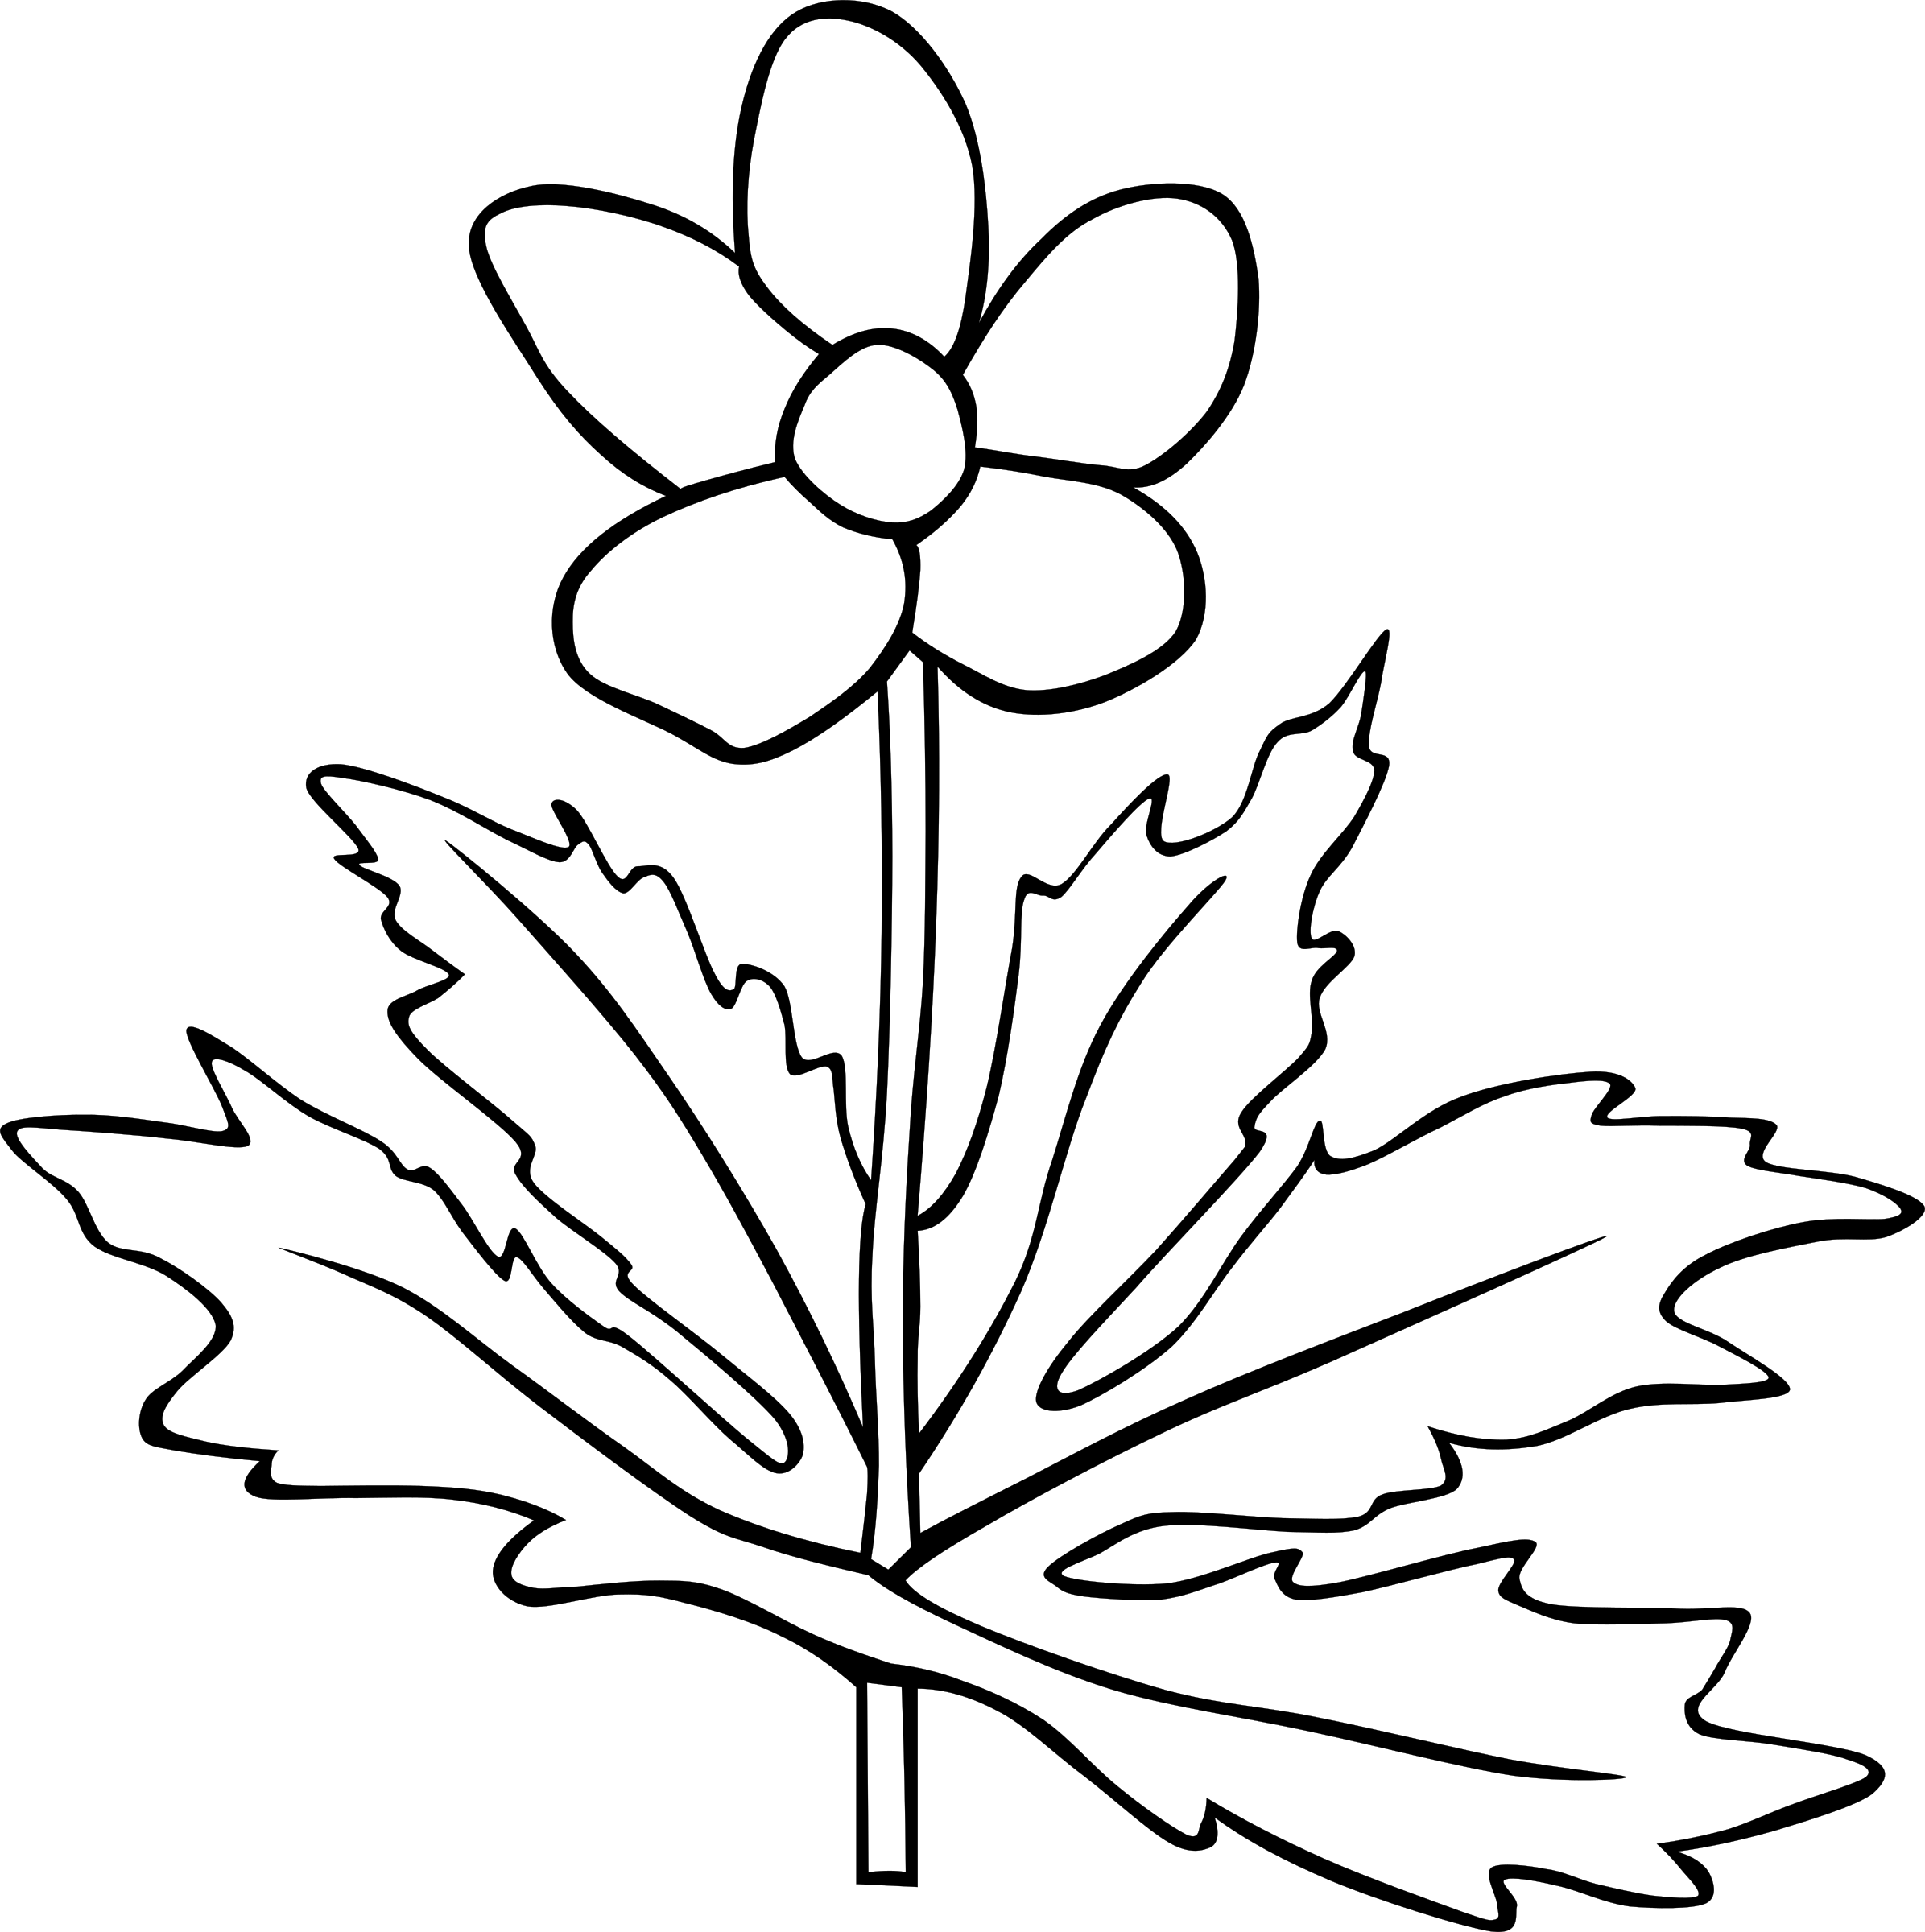 Flower outline png. Anemone canadensis icons free